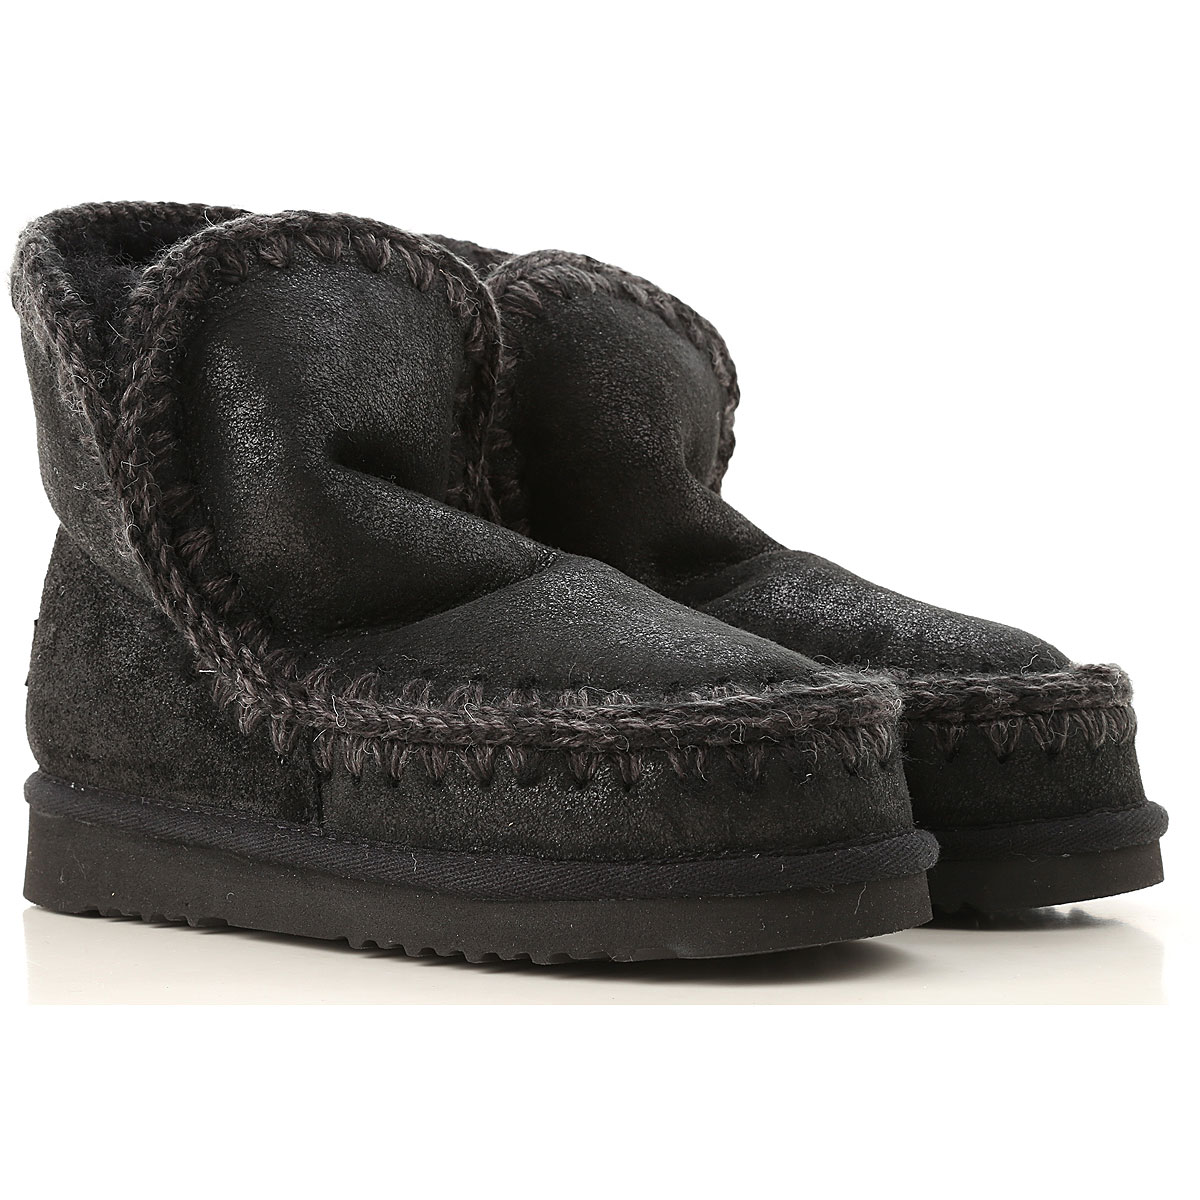 Image of Mou Boots for Women, Booties, Black, suede, 2017, EUR 36 - UK 3 - USA 5.5 EUR 37 - UK 4 - USA 6.5 EUR 38 - UK 5 - USA 7.5 EUR 40 - UK 7 - USA 9.5